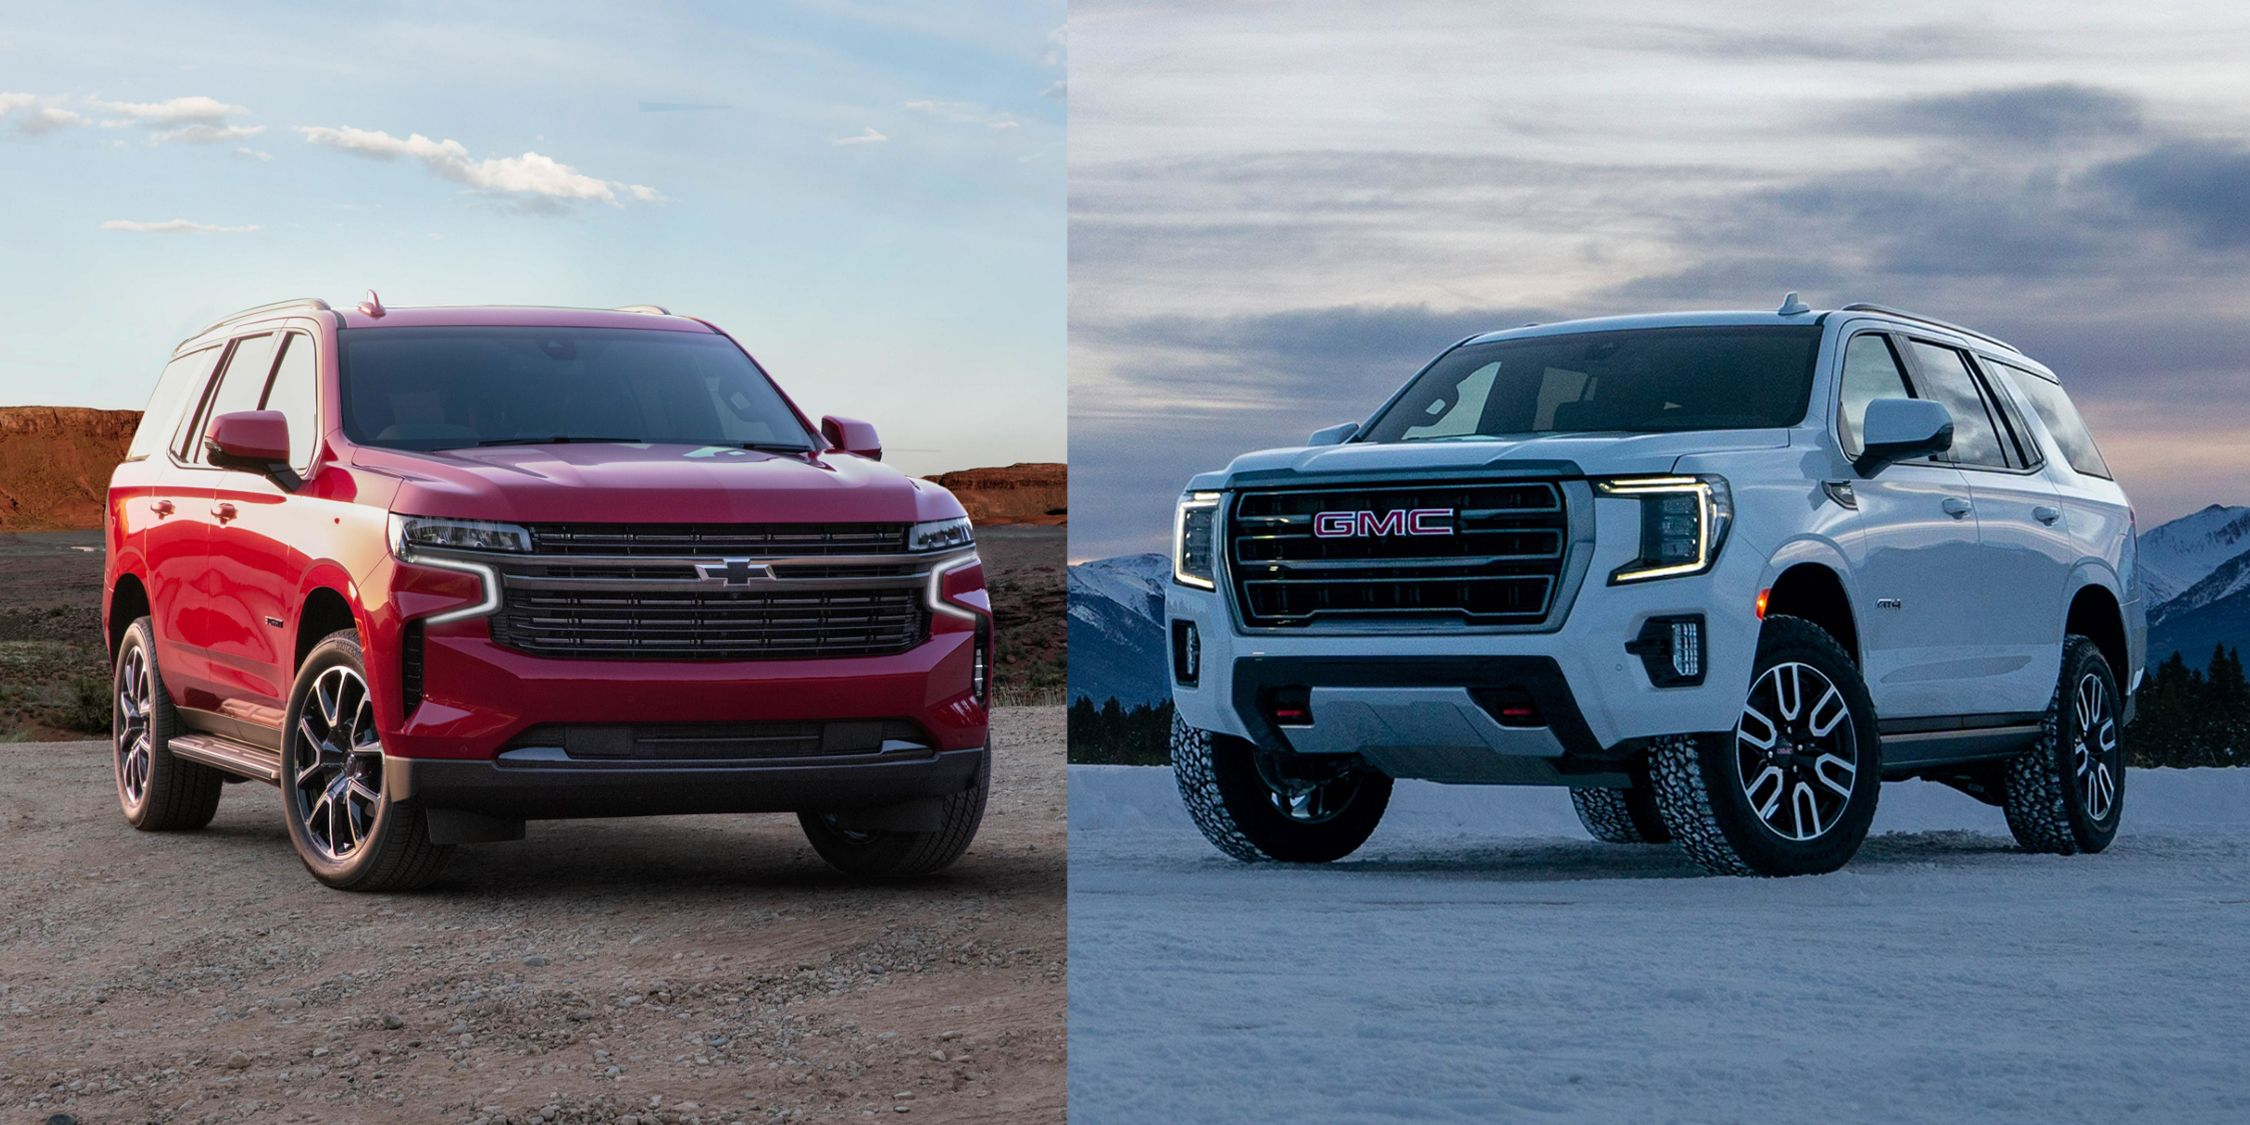 How The 2021 Chevy Tahoe And Gmc Yukon Are The Same—And Price Of A 2021 Chevy Silverado Fuel Economy, Grill, Gas Mileage